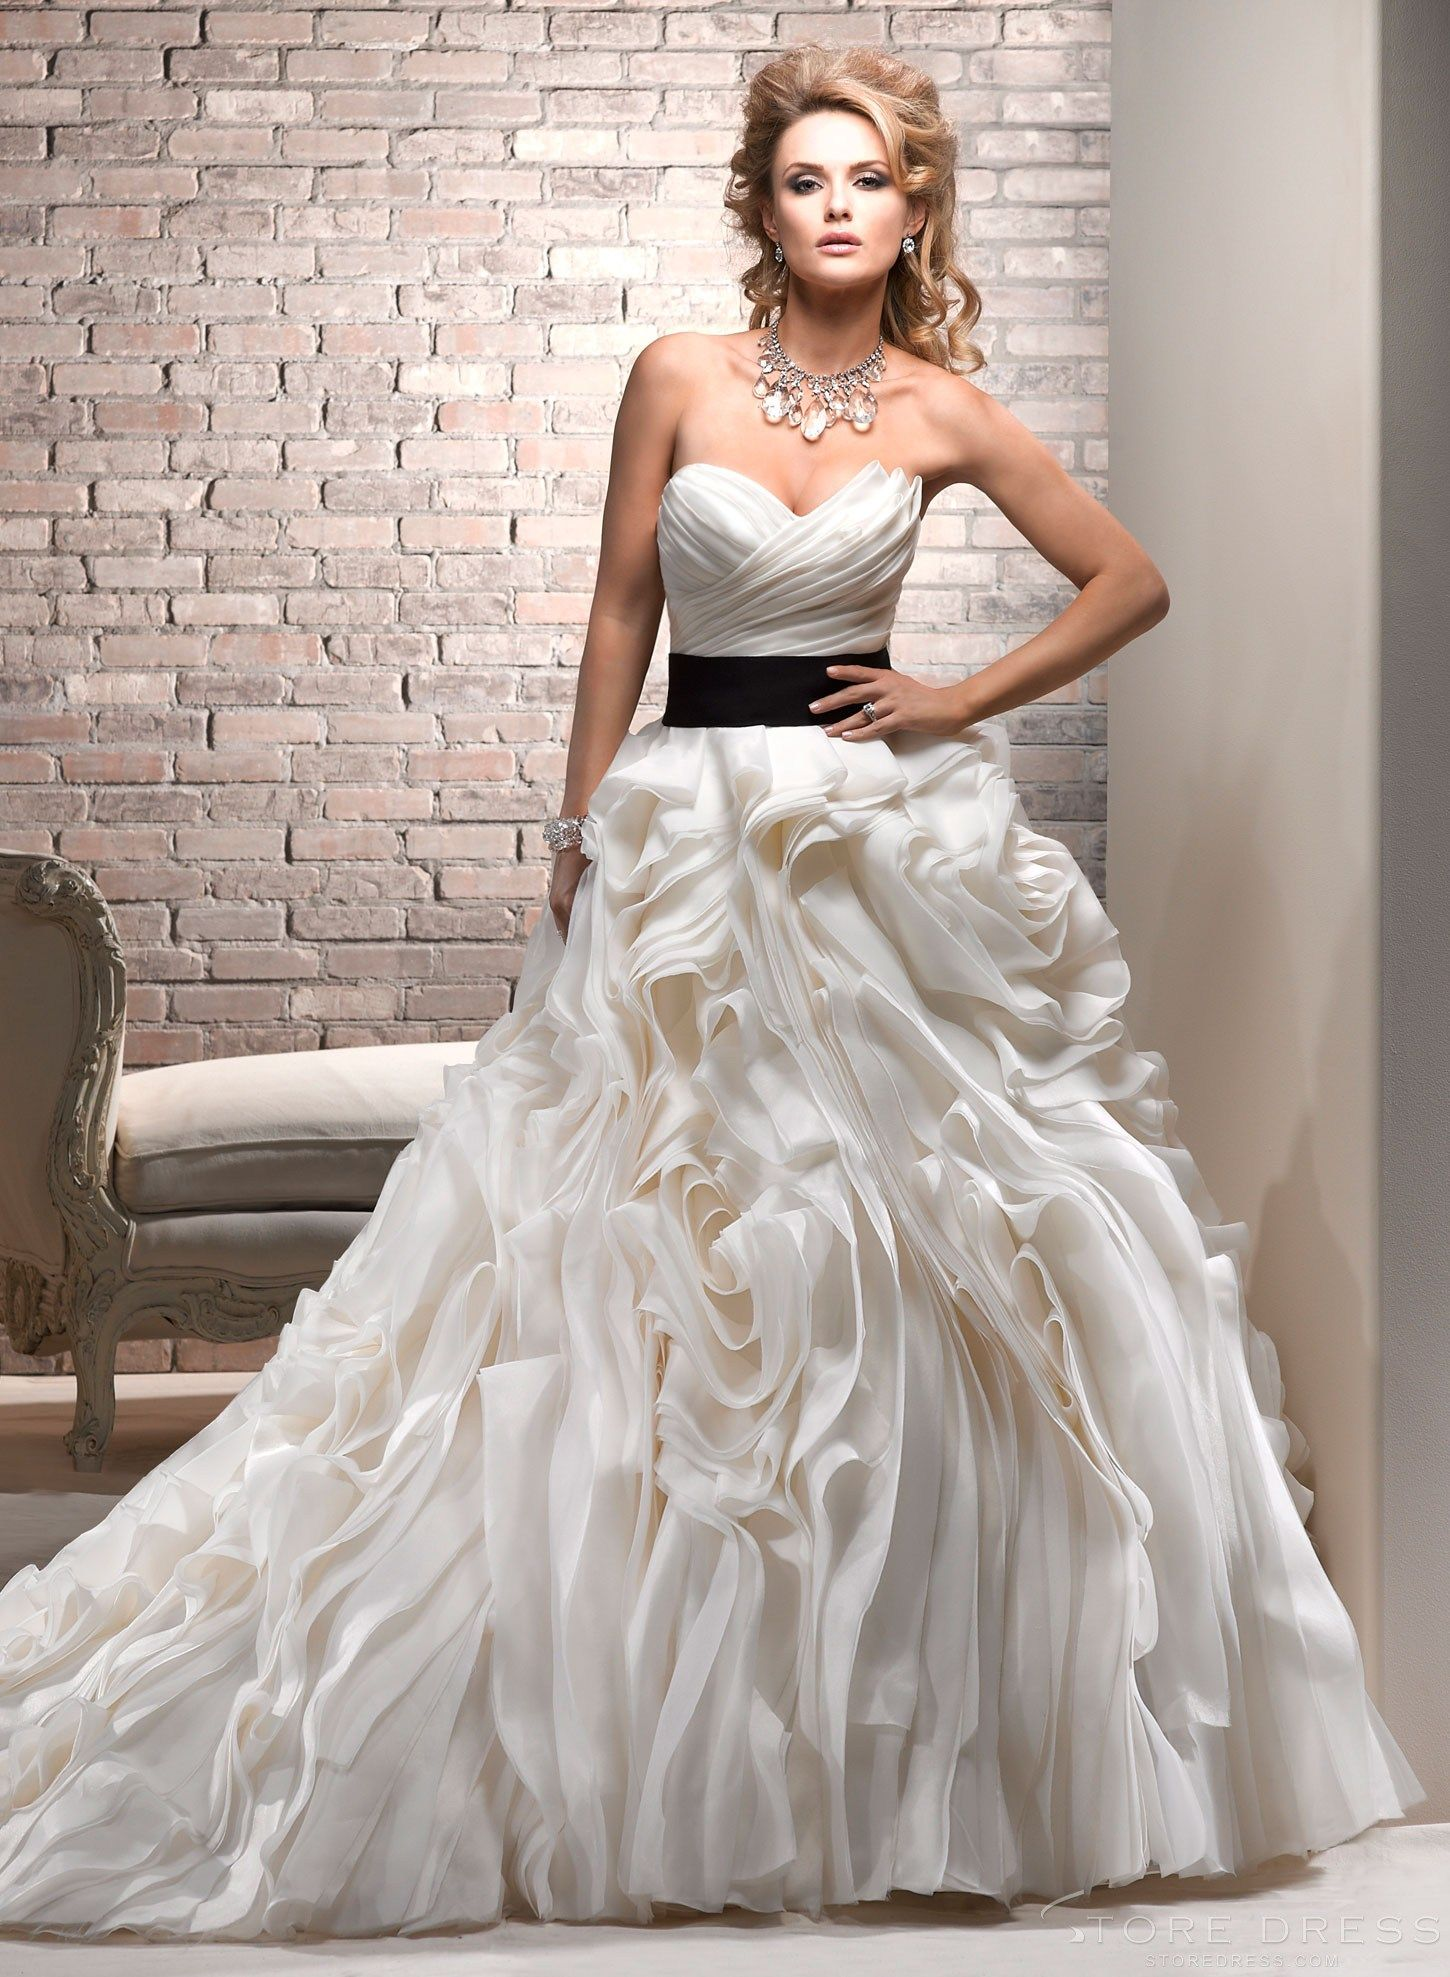 Irresistible new arrival style sweetheart wedding dress at